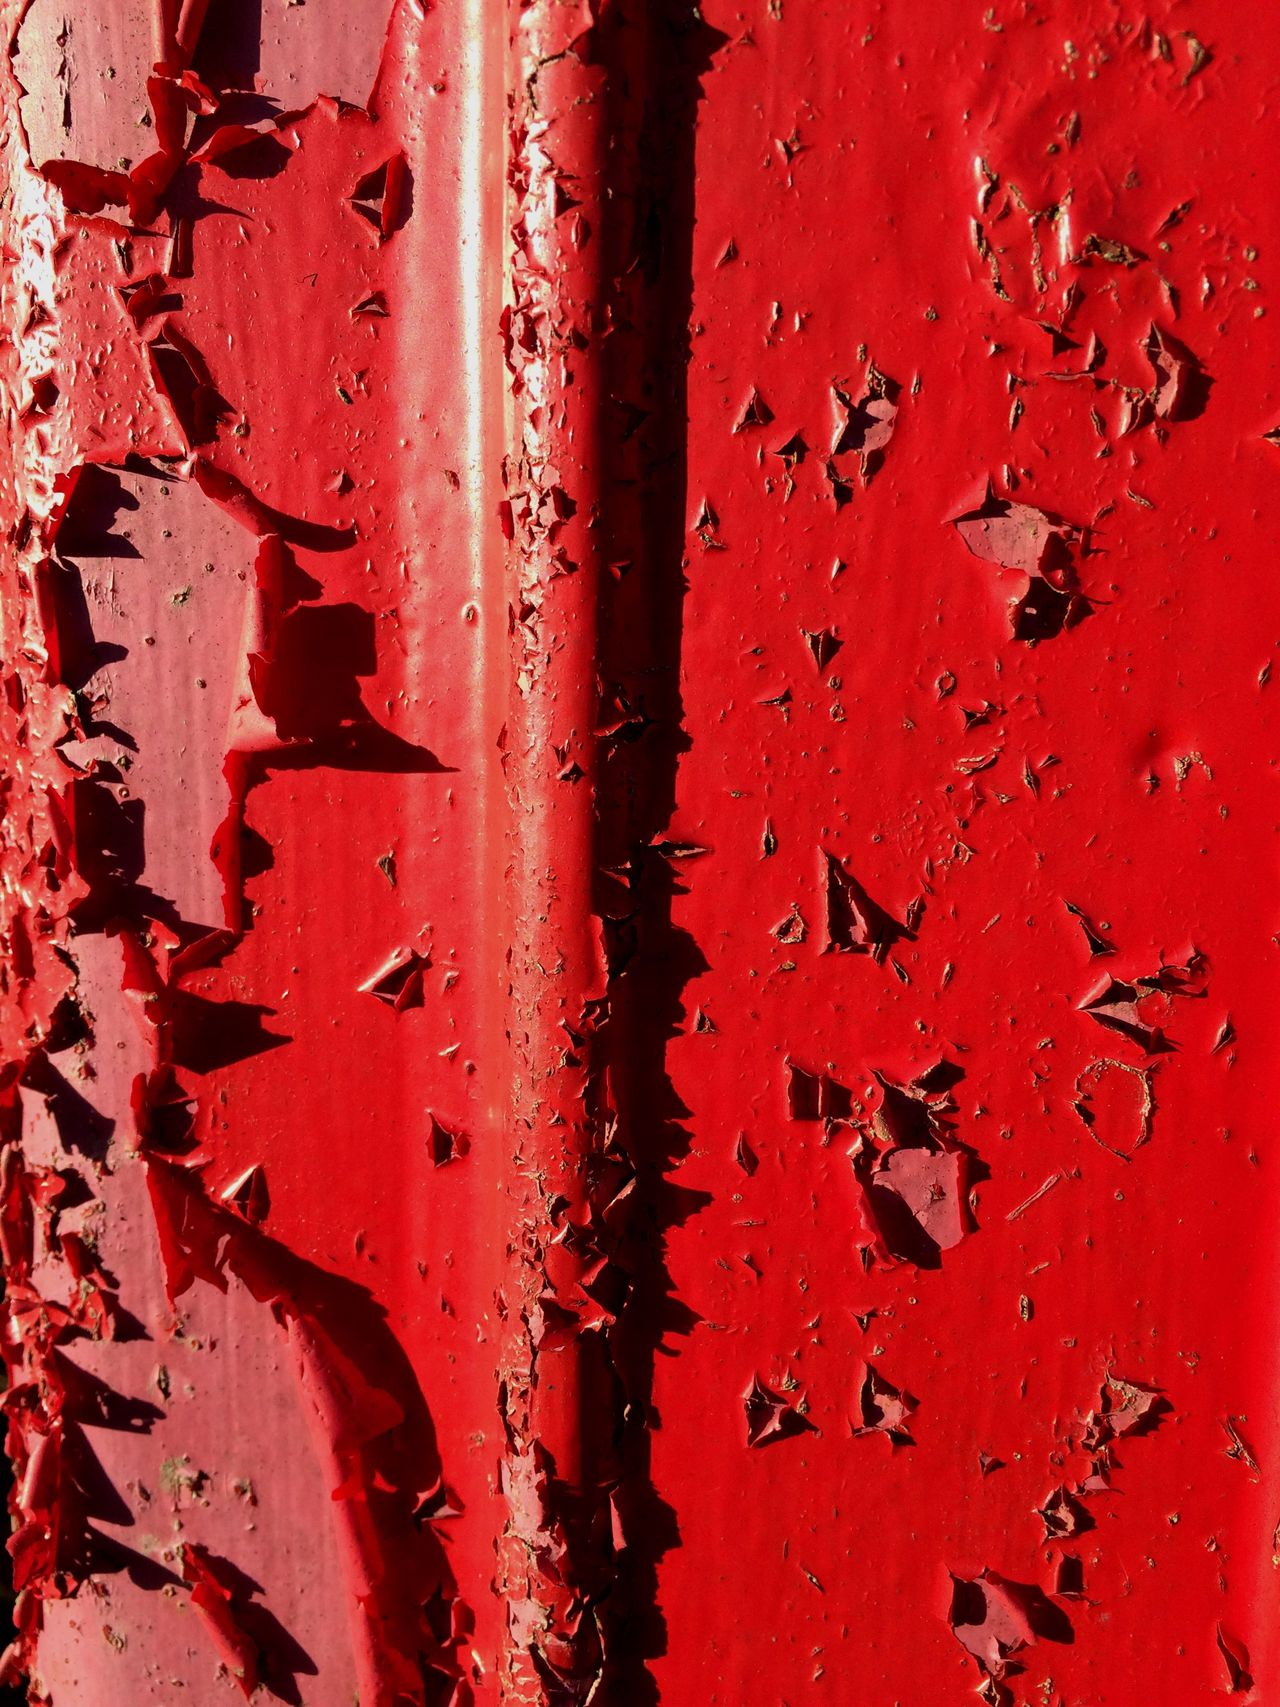 Red Abstract Close-up Backgrounds No People Decay Full Frame Textured  Peeled Outdoors Paint Decay Paint Peeling